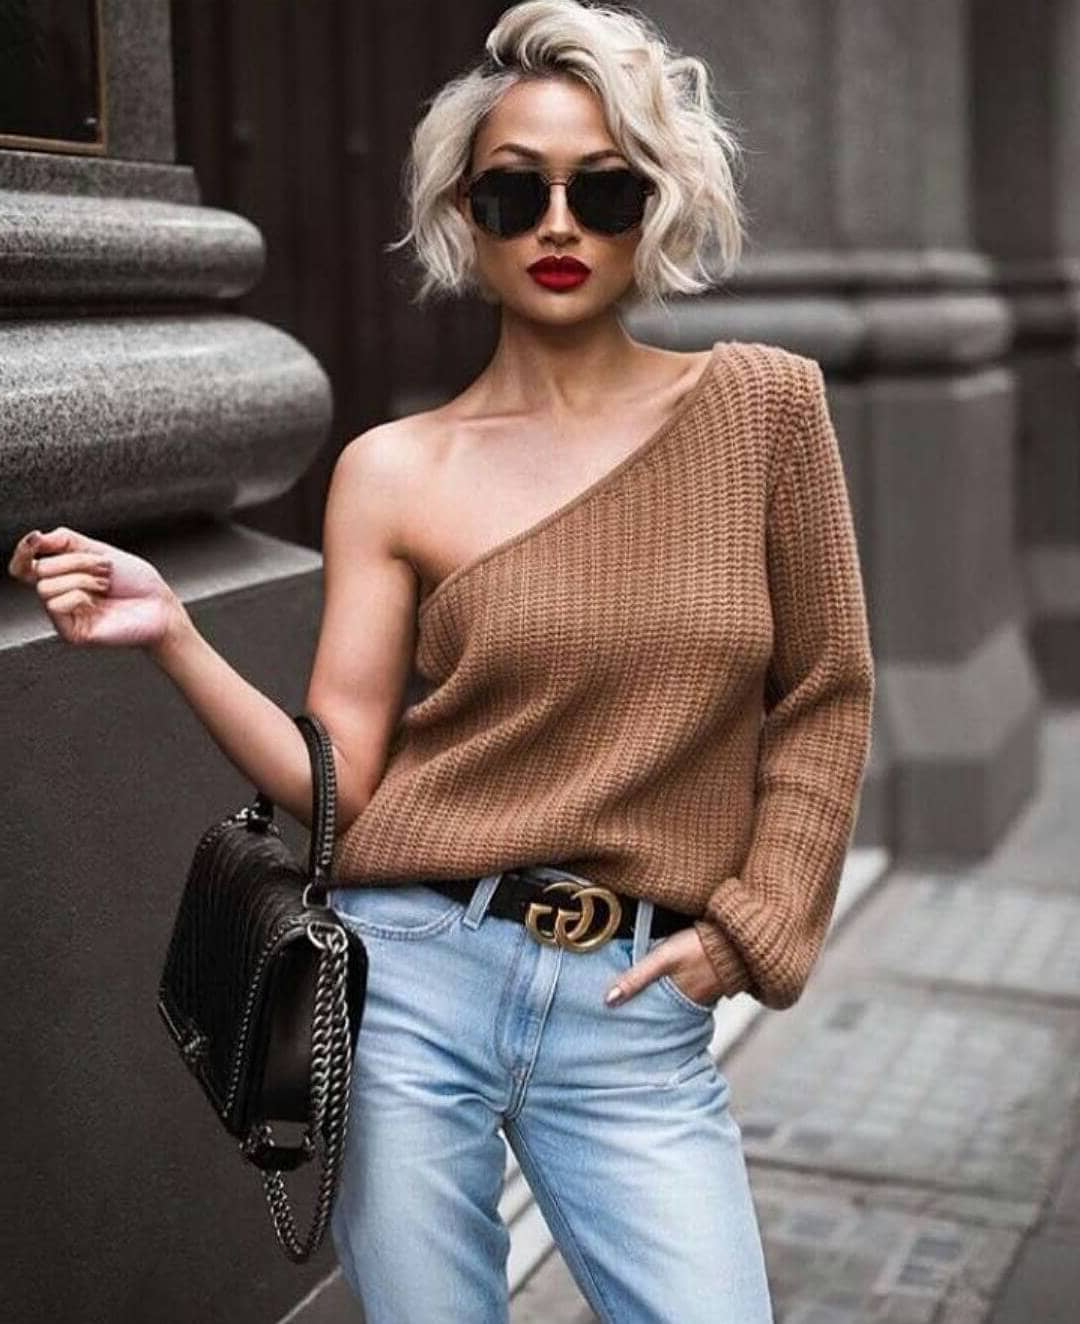 50 Fresh Short Blonde Hair Ideas To Update Your Style In 2019 Throughout Most Popular Short Platinum Blonde Bob Hairstyles (View 18 of 20)